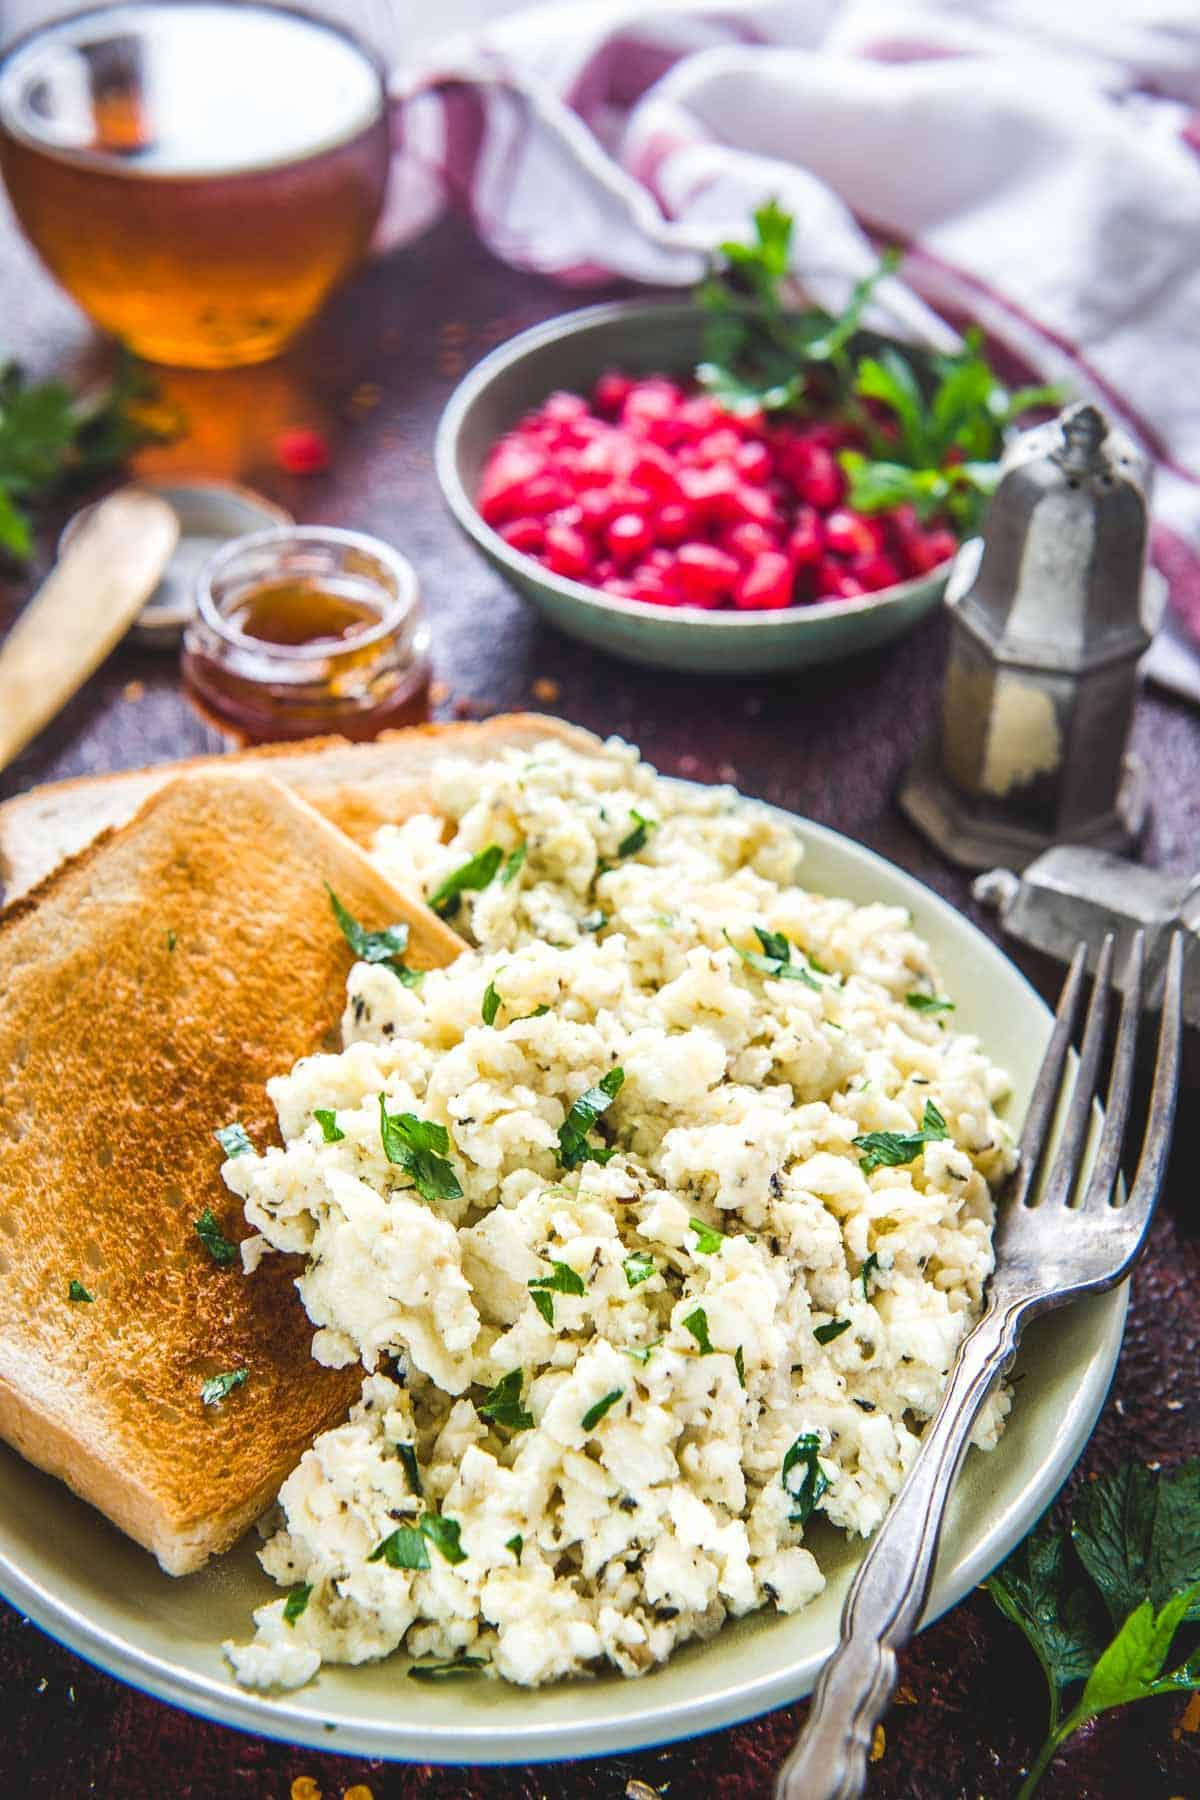 Scrambled Egg Whites served on a plate with toast.